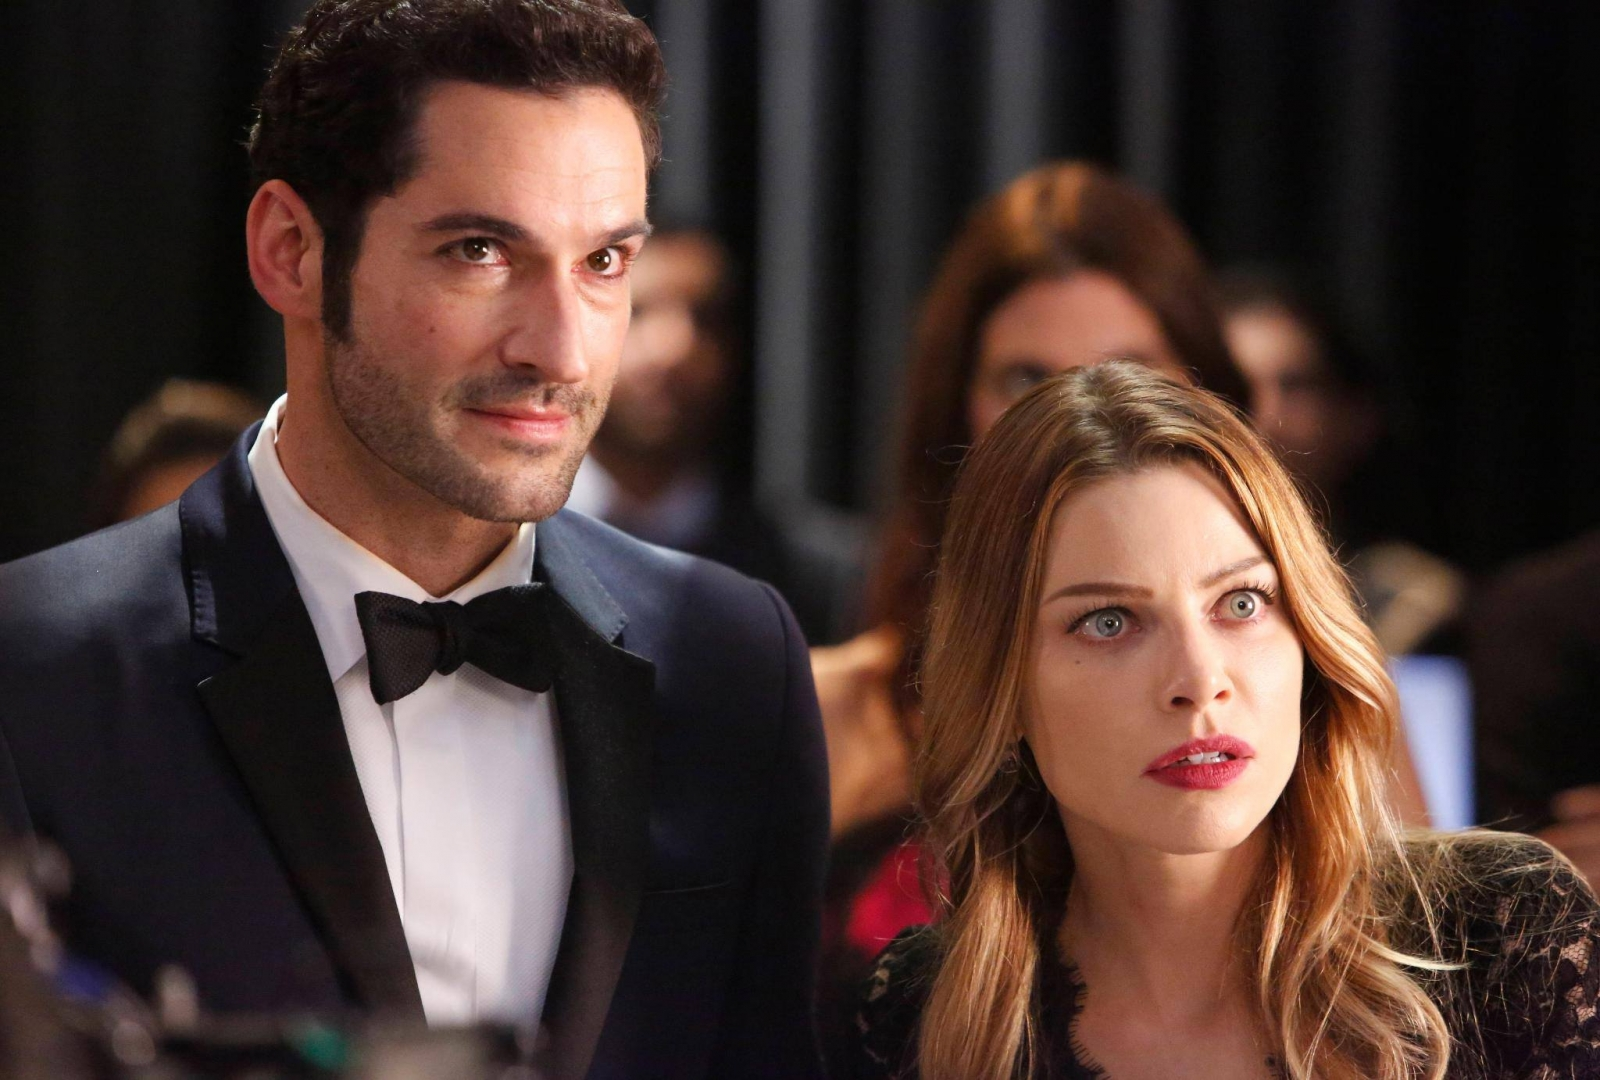 Lucifer and Chloe Alternate Universe Marriage